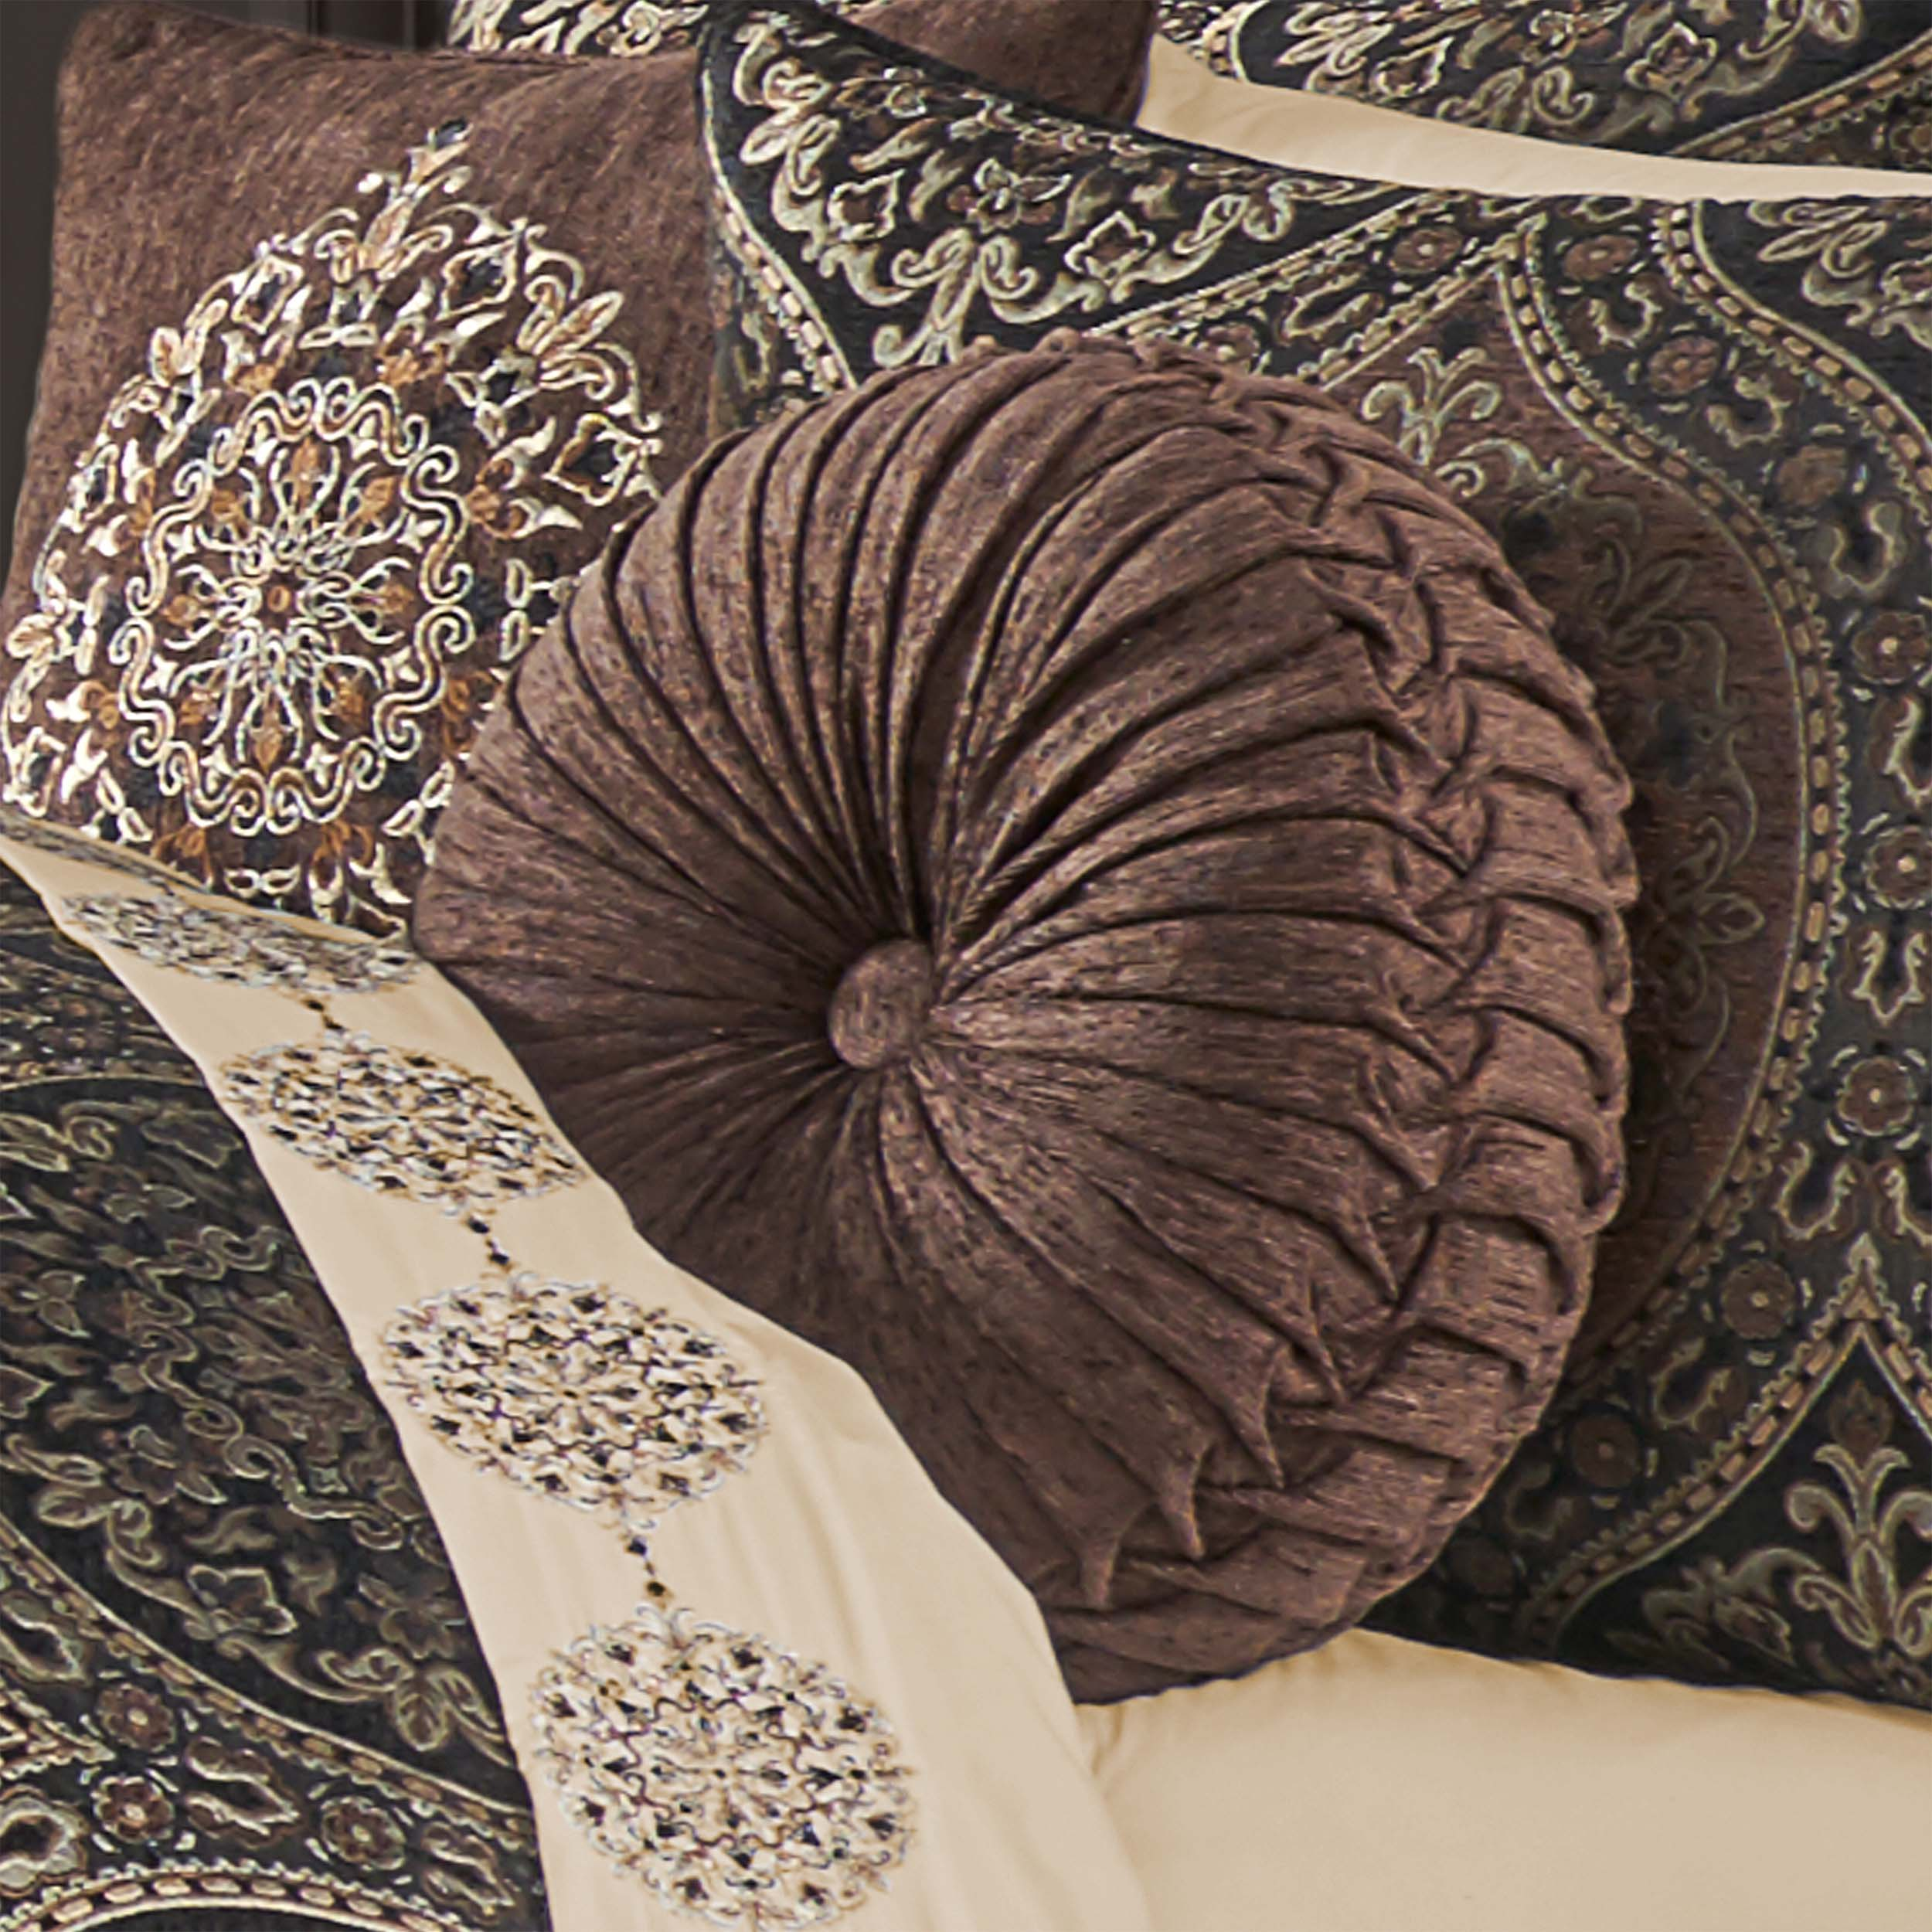 Mahogany Chocolate Tufted Round Decorative Throw Pillow Throw Pillows By J. Queen New York